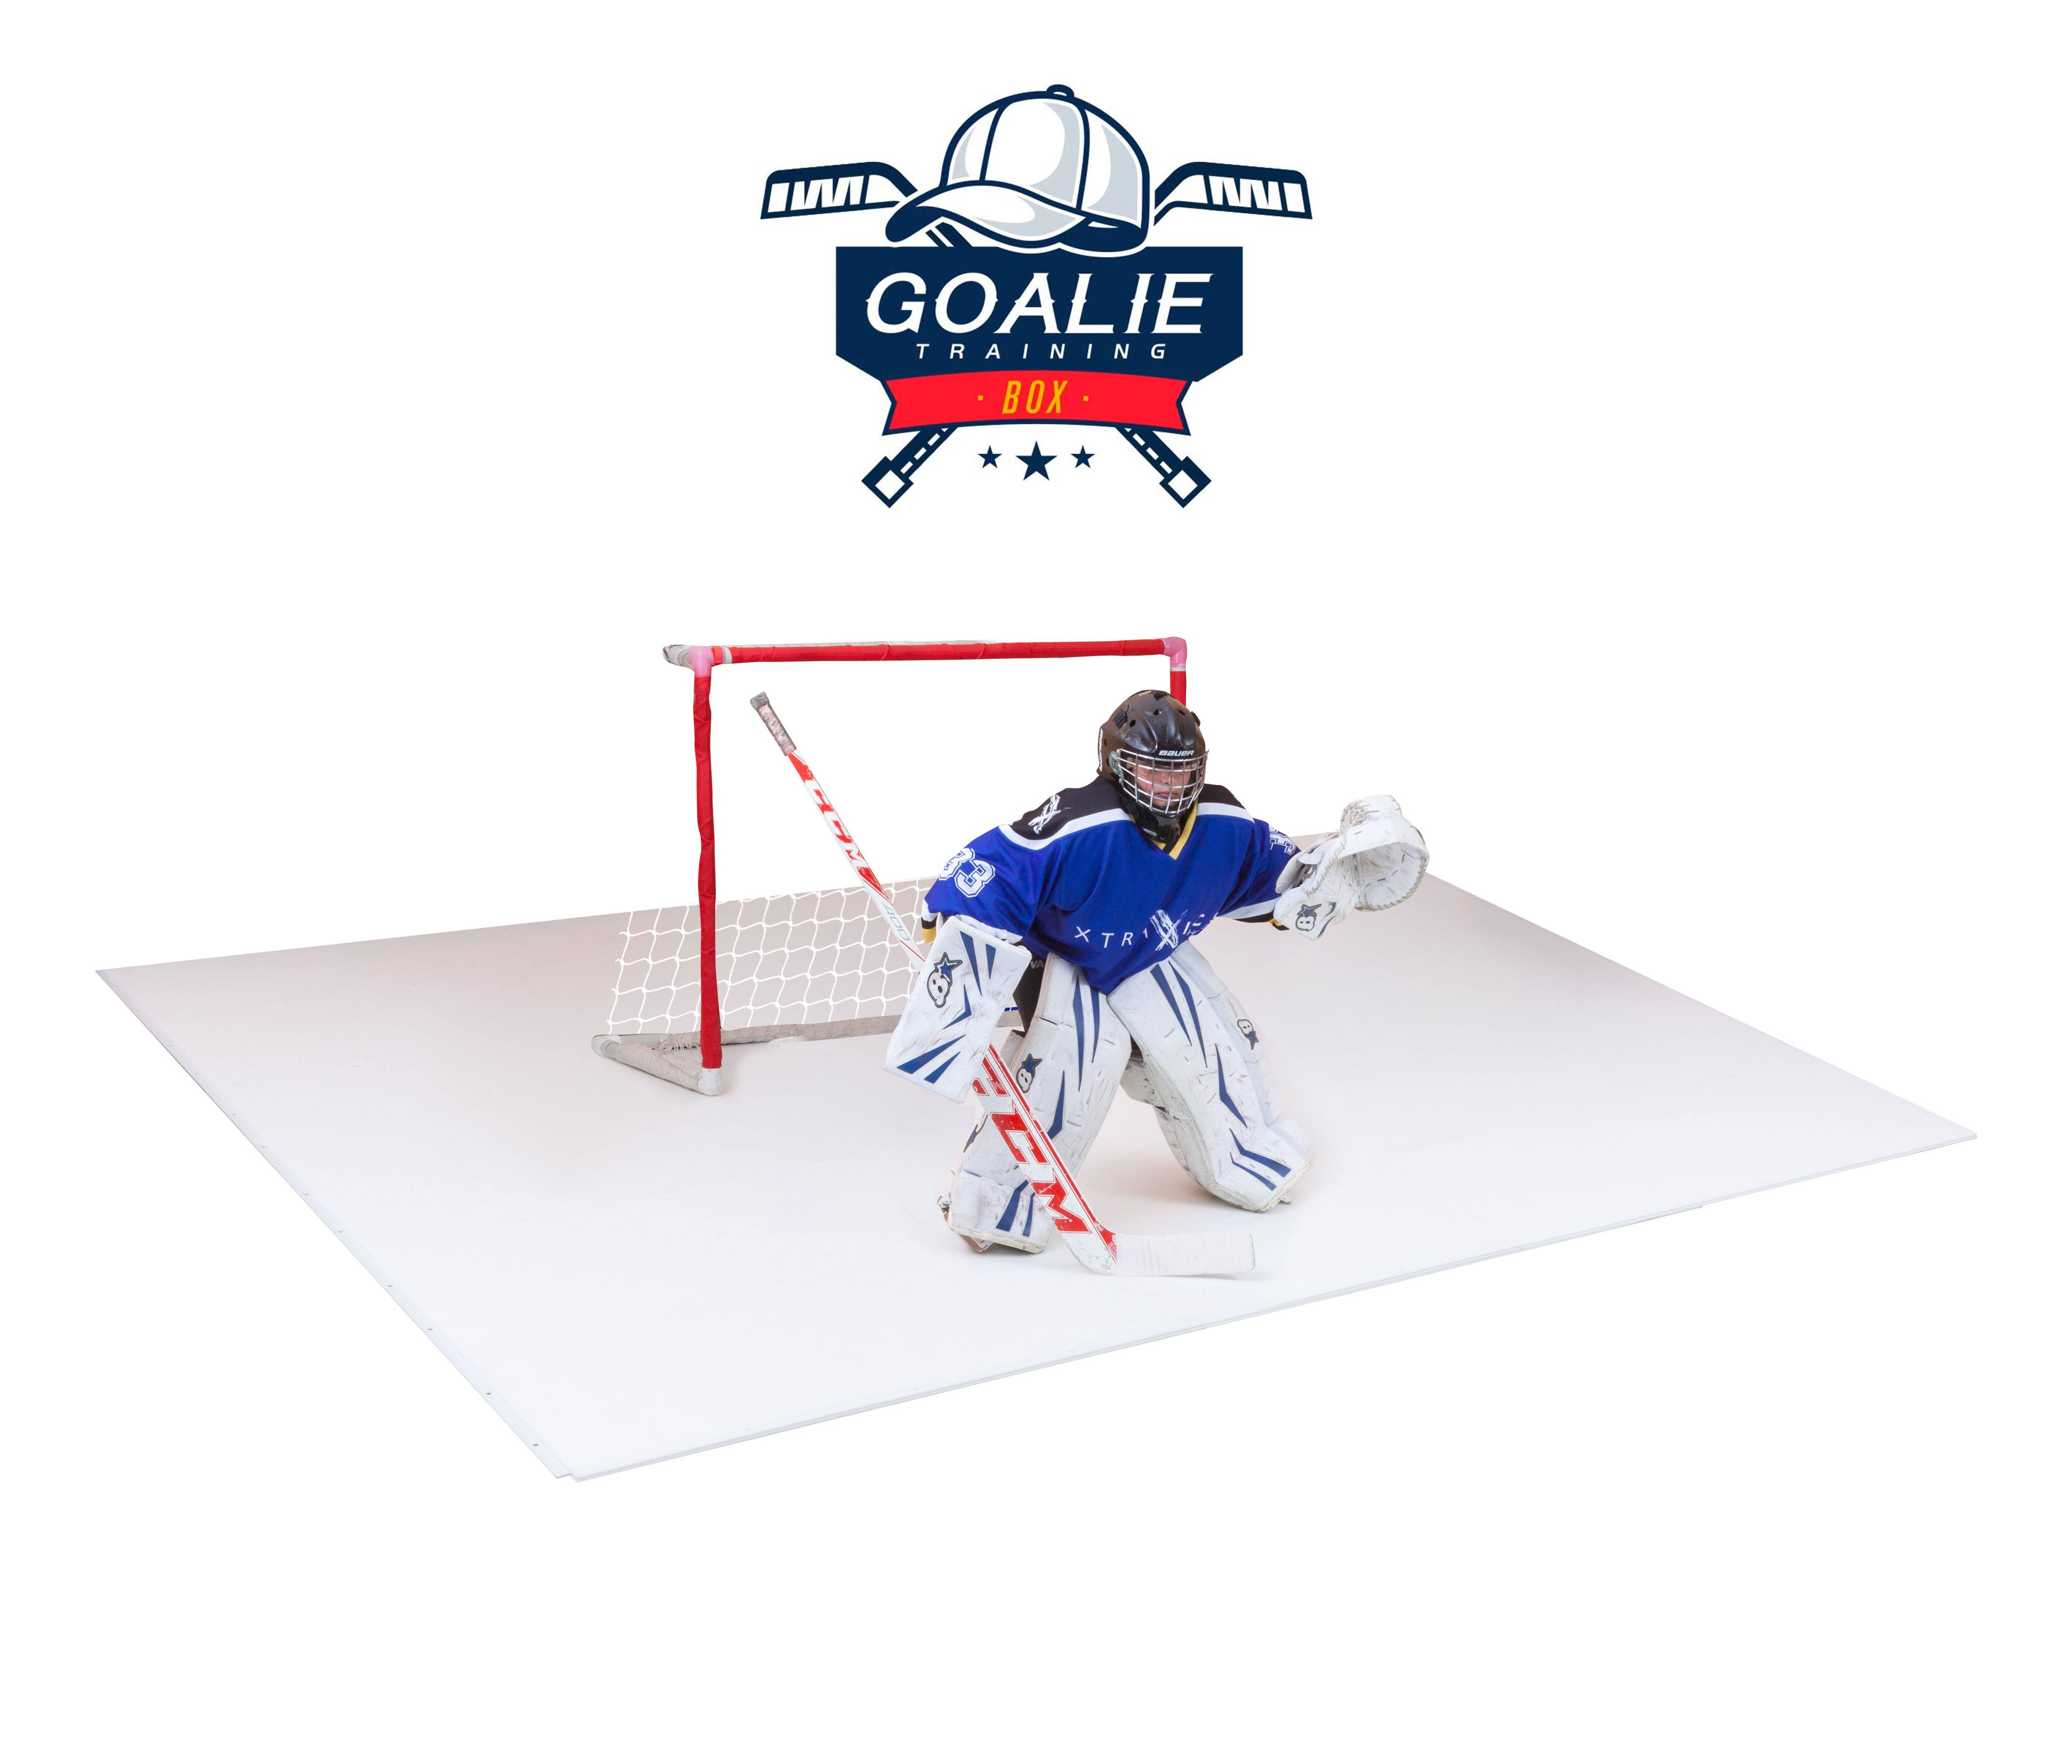 Goalie Training Box